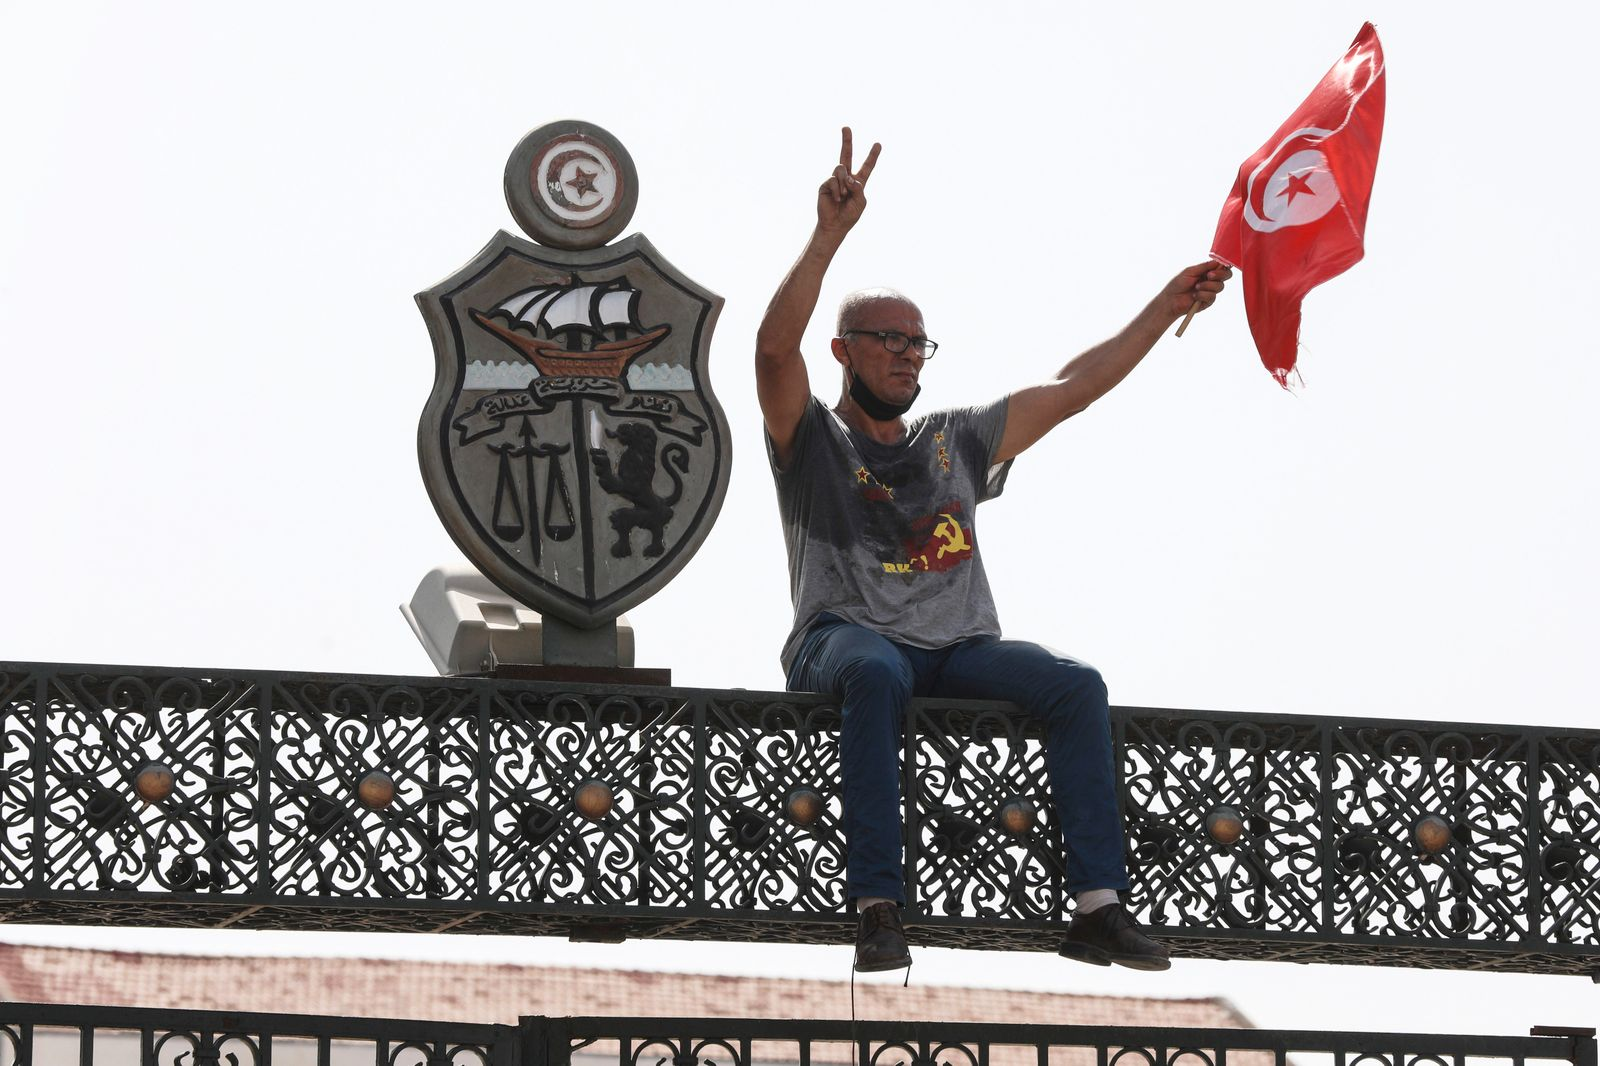 Protests in Tunis after President ousts PM